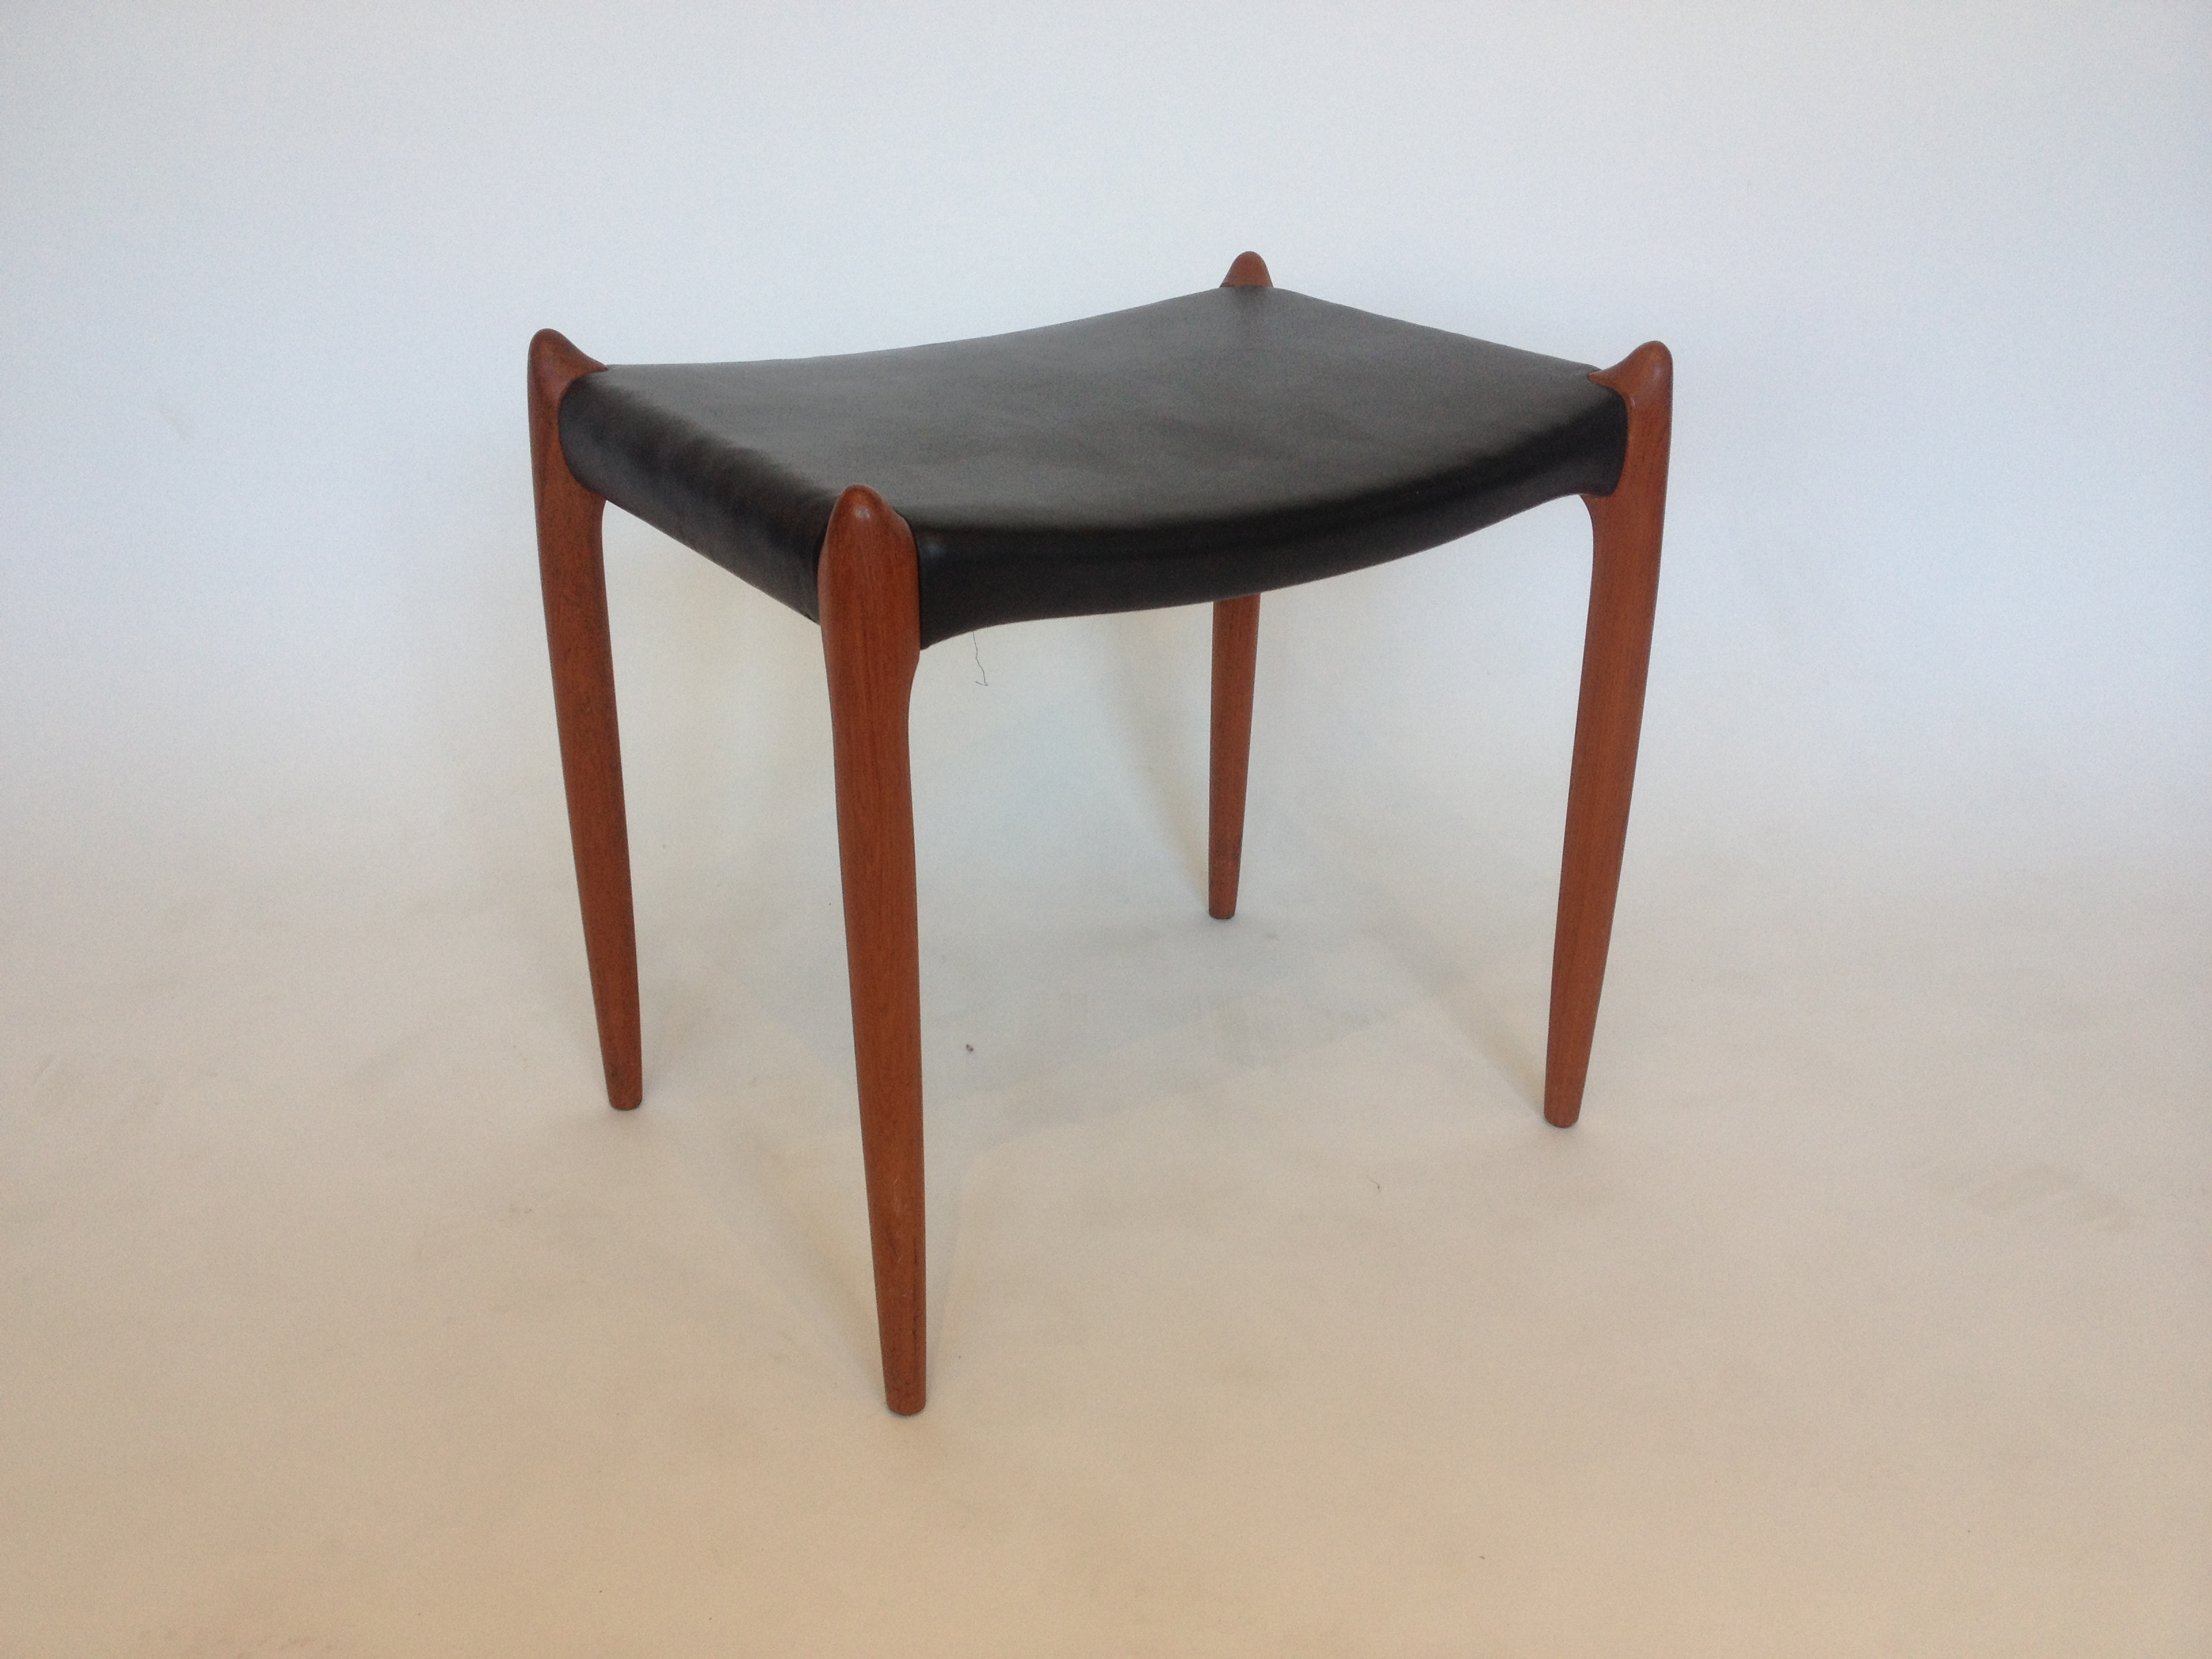 Incredibly Sculptural Early 1960 s teak foot stool  ottoman Designed by  Niels Moller for J L  Moller. The Fabulous Find   Mid Century Modern Furniture Showroom in